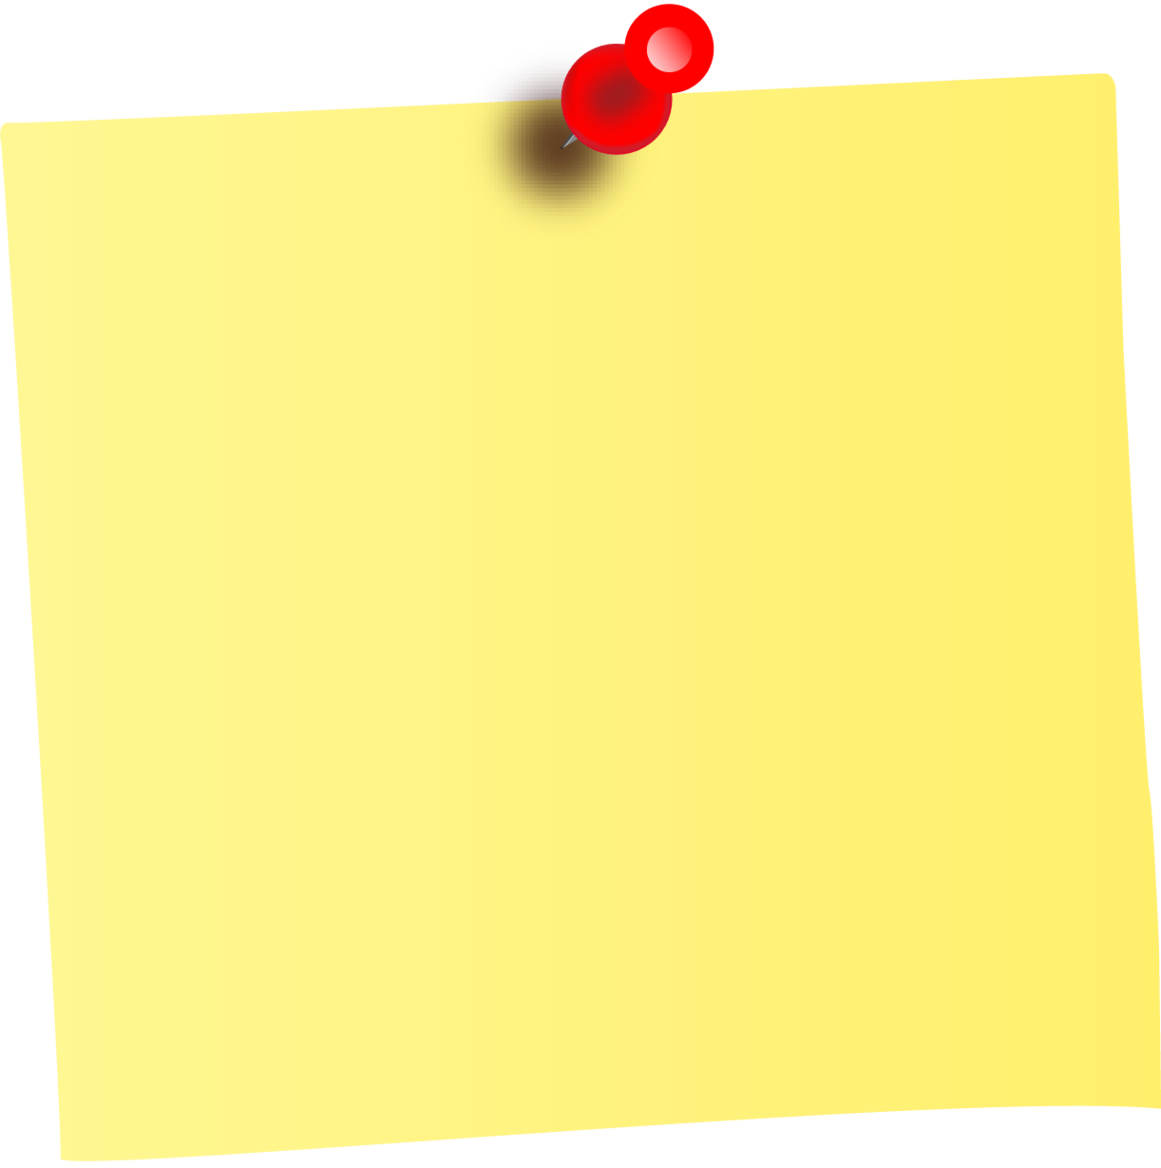 Paper clipart sticky note. Png of a transparent